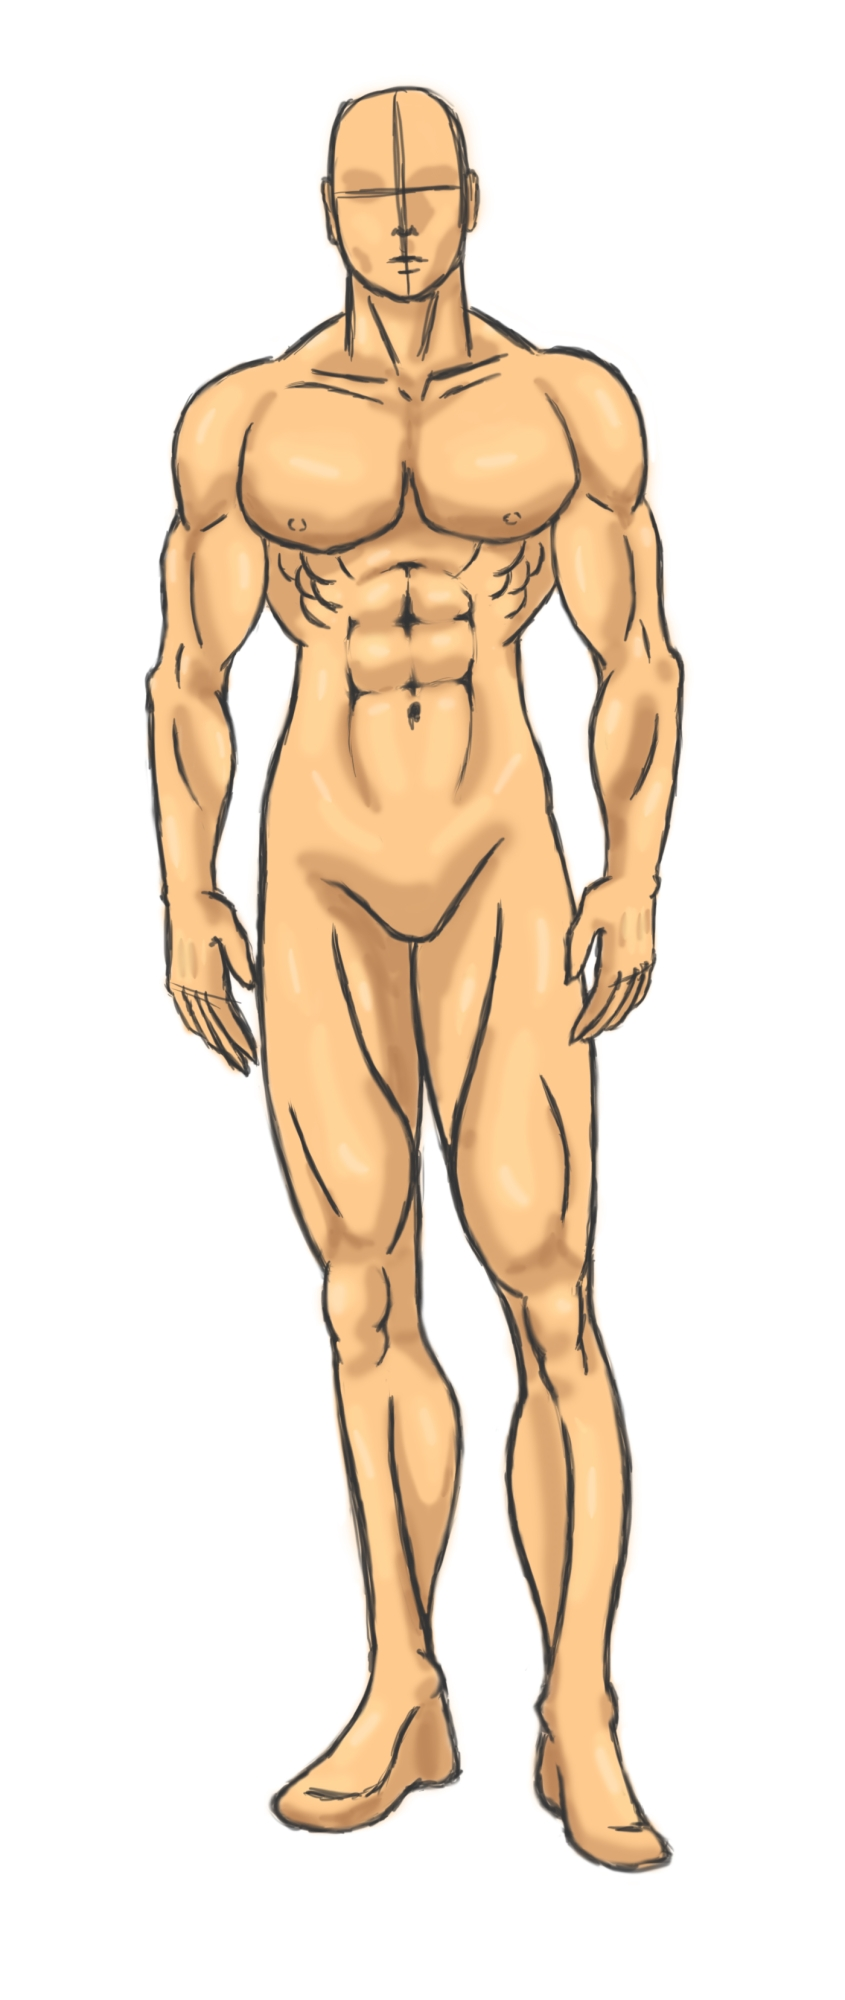 845x2000 Male Model 1 By Tenessi